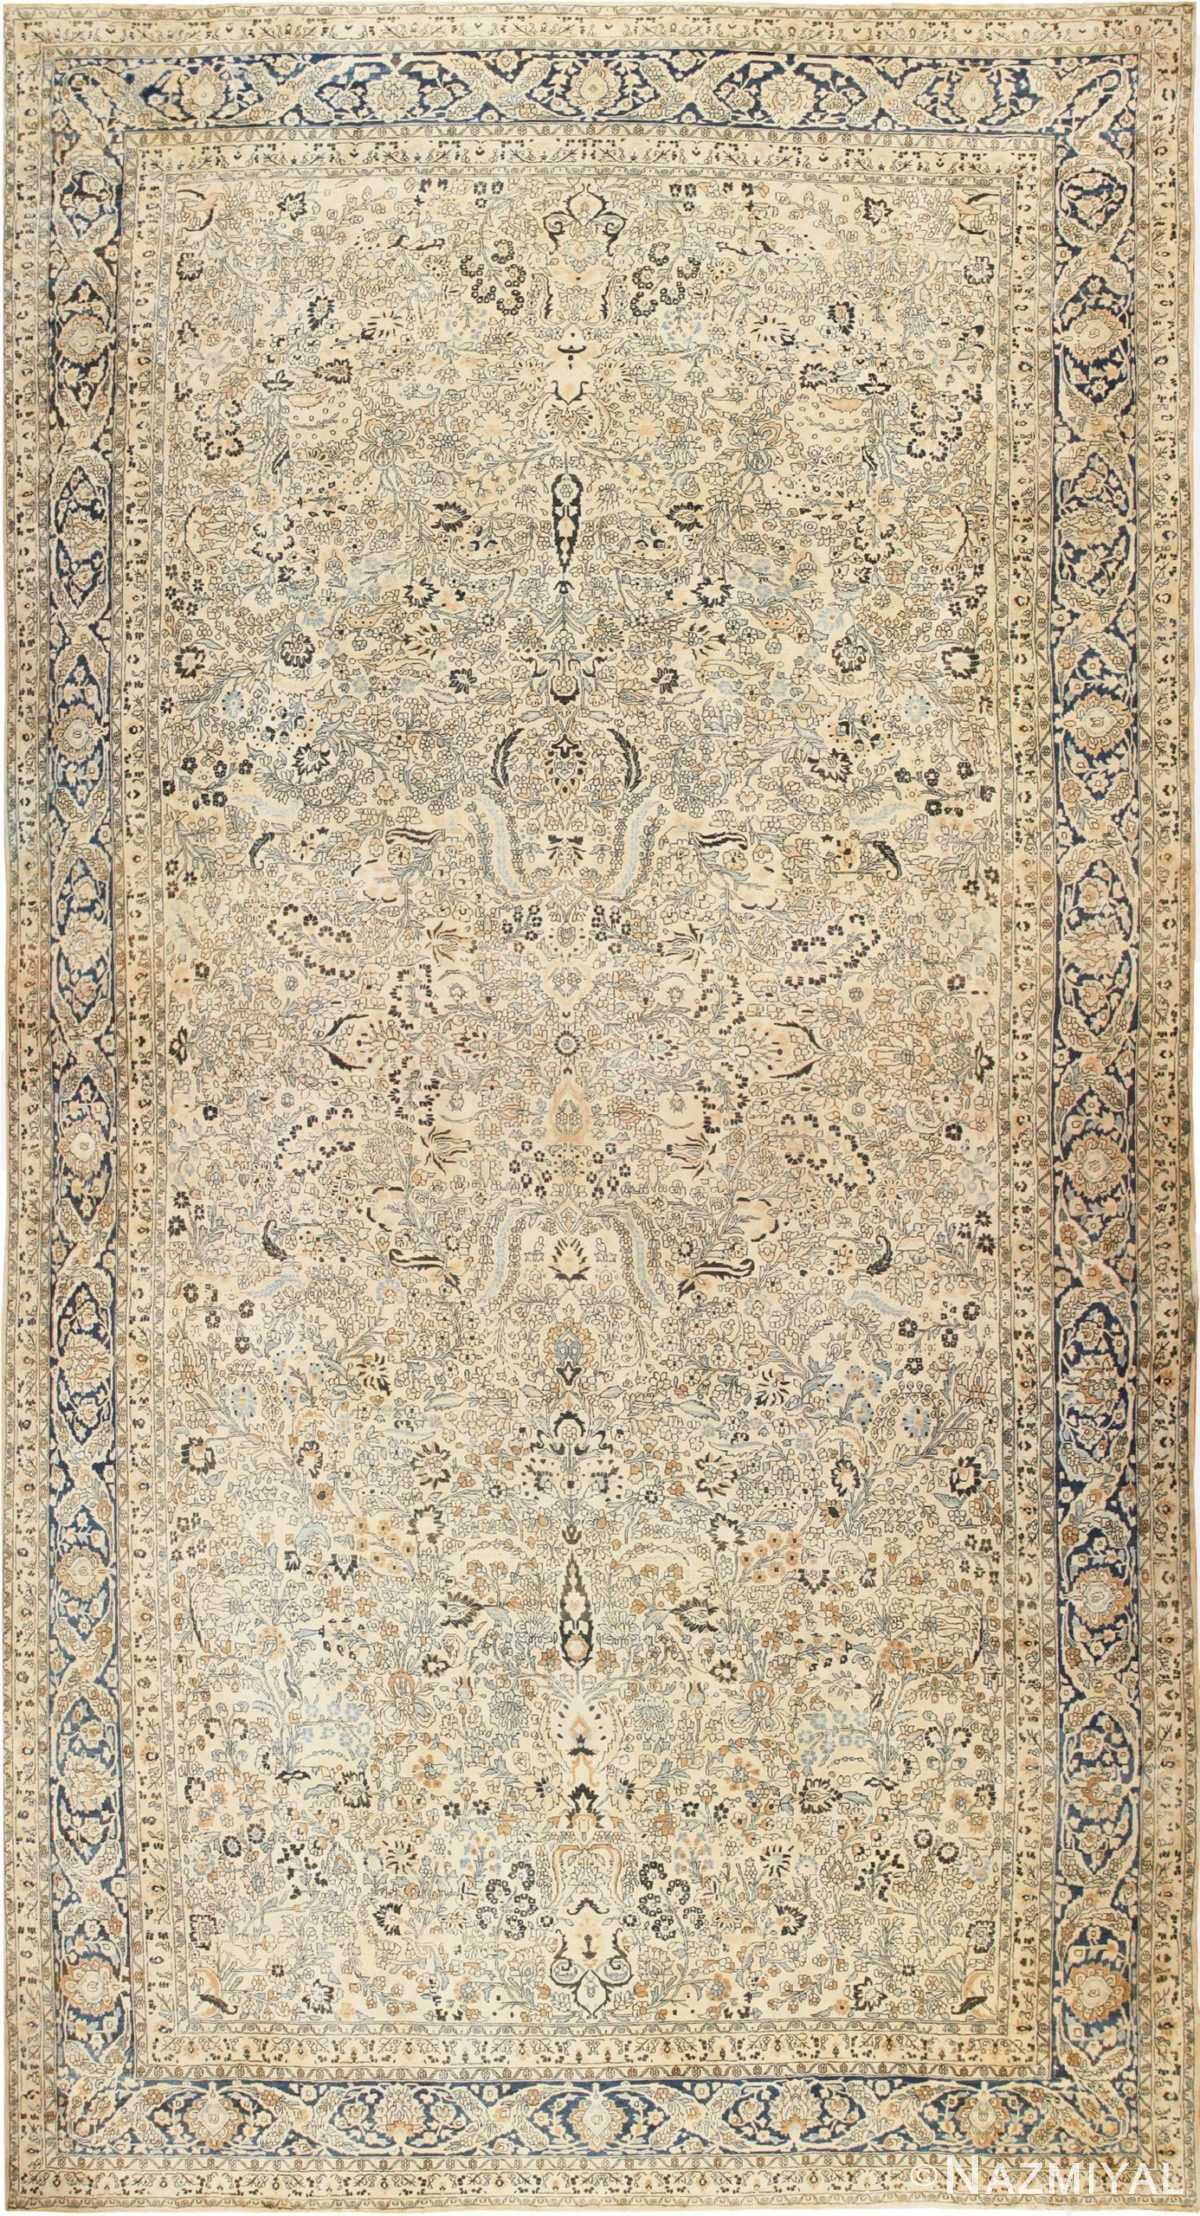 Decorative Antique Oversized Persian Khorassan Rug 48825 Nazmiyal